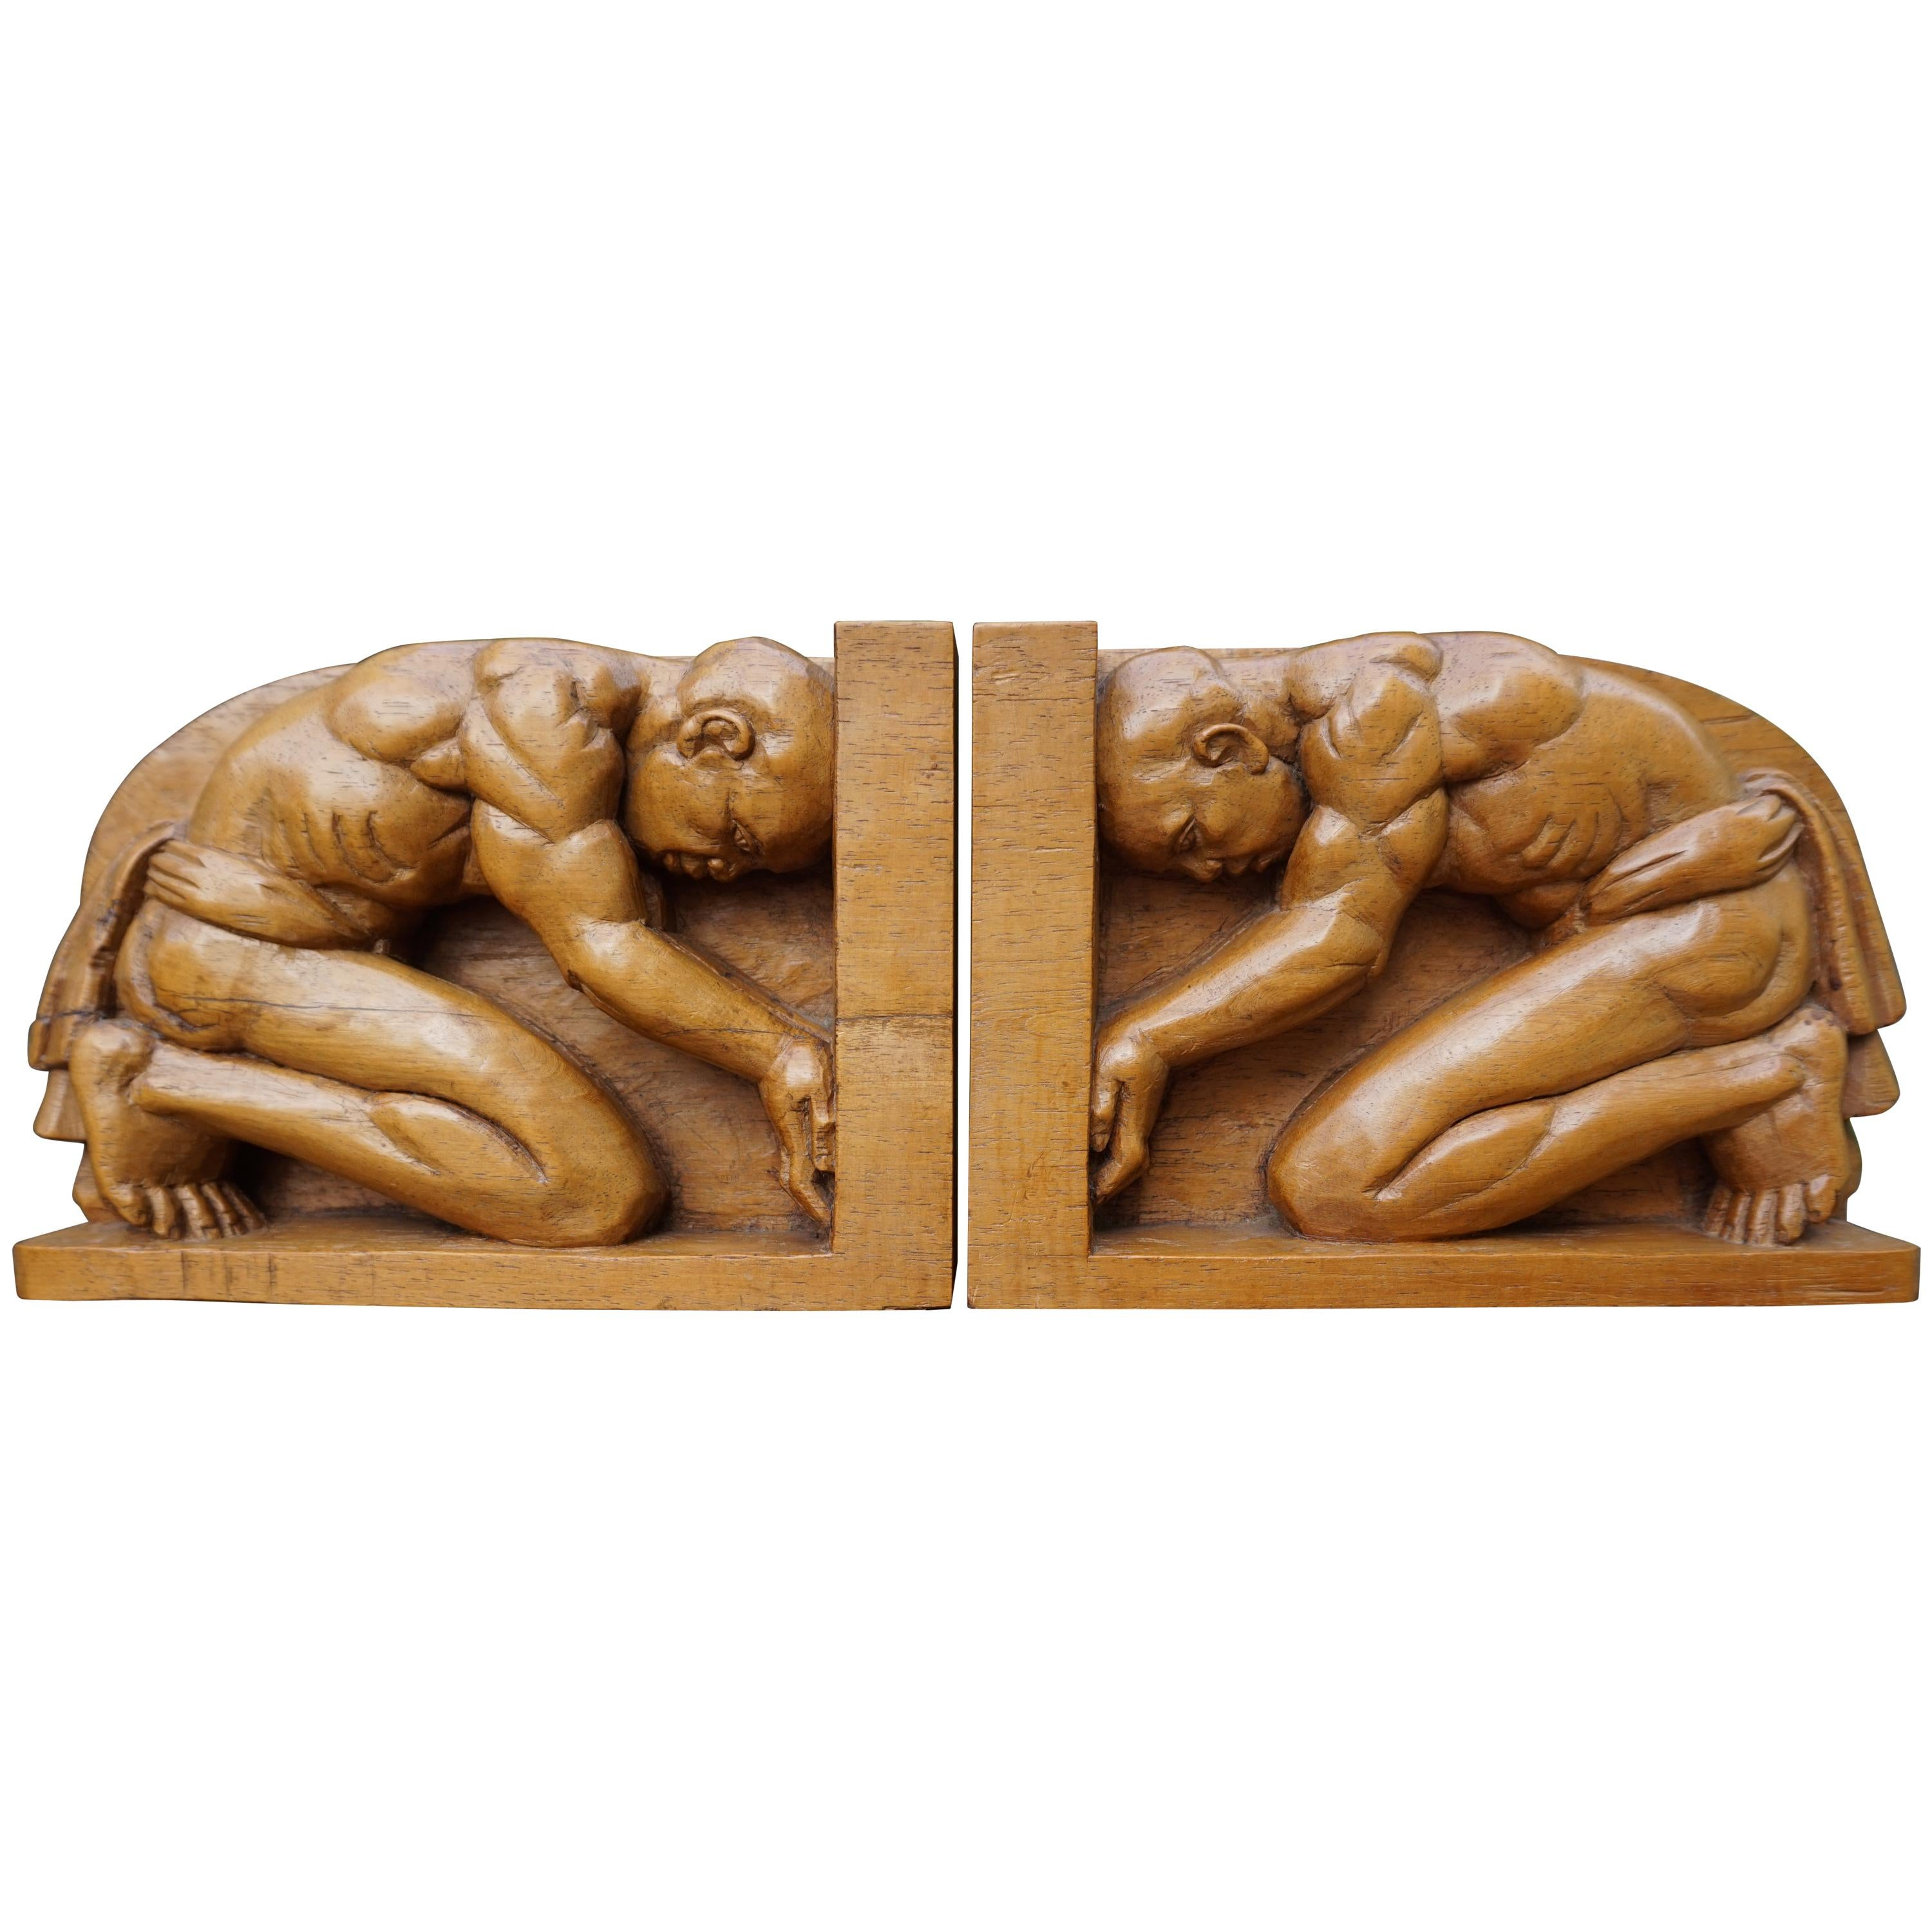 Hand-Carved Jati Wood Arts & Crafts Bookends with Indigenous Male Sculptures